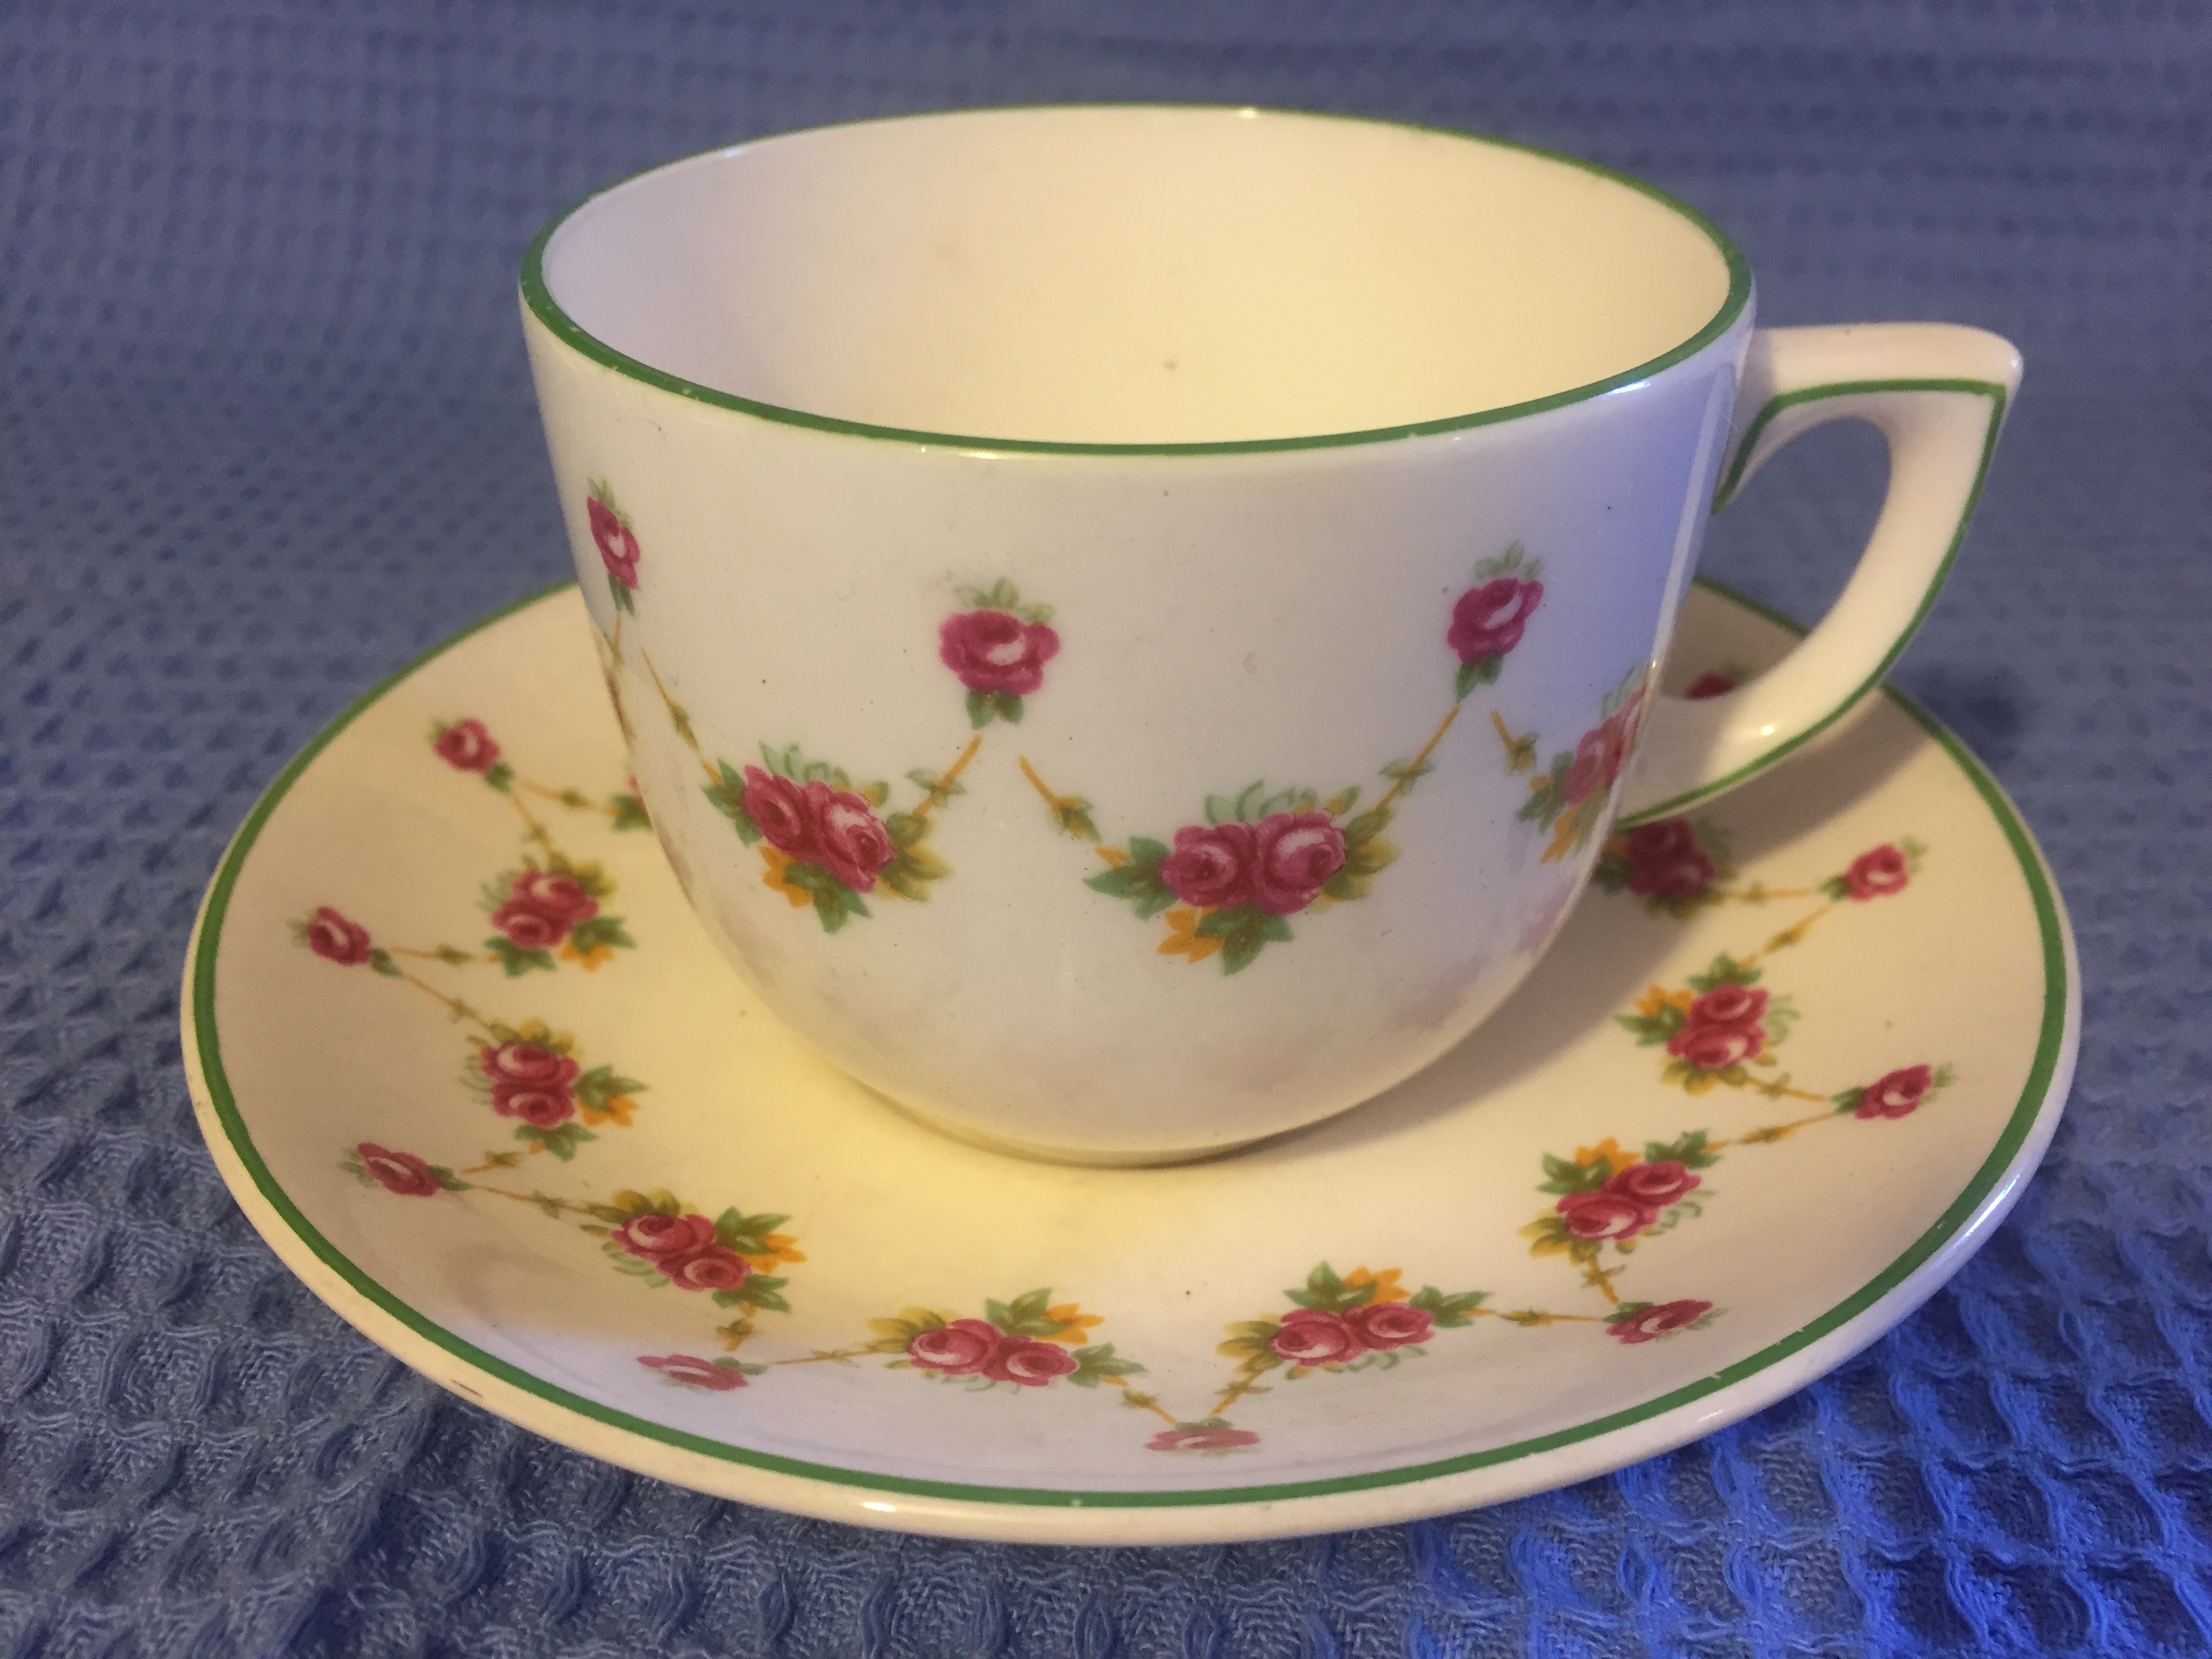 CUP & SAUCER IN DECORATIVE COMPANY PATTERN FROM THE UNION CASTLE LINE